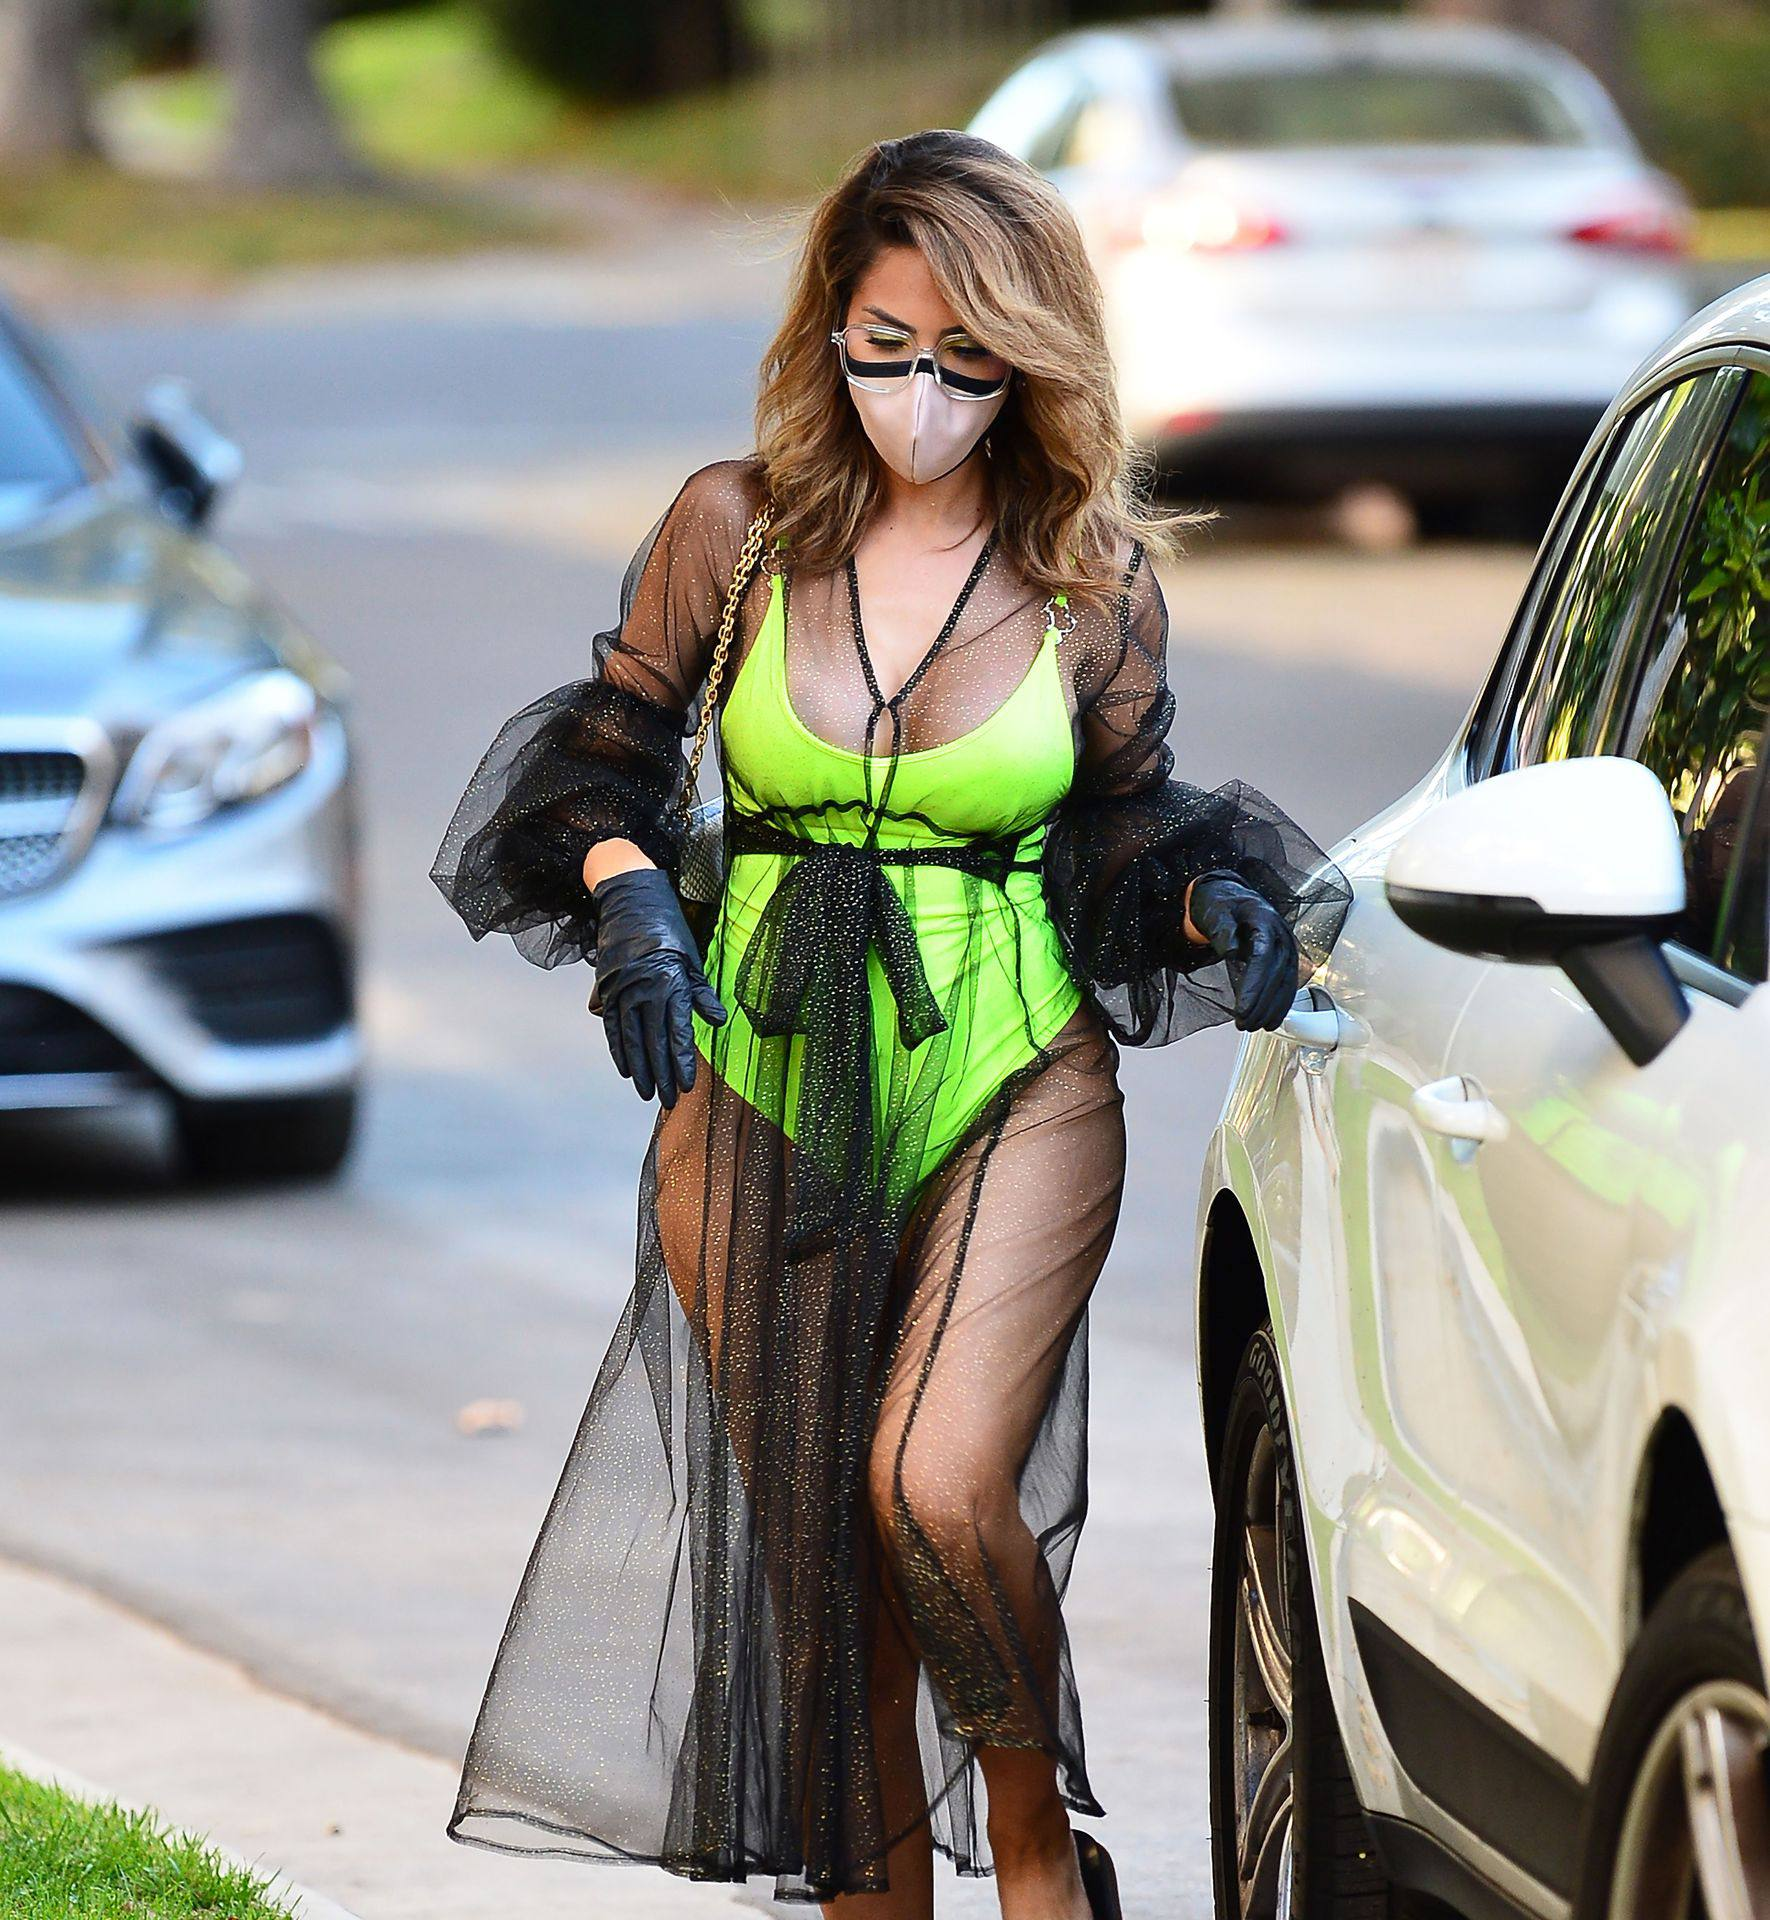 Farrah Abraham – Sexy Big Ass In Neon Green Swimsuit Out In Los Angeles 0001